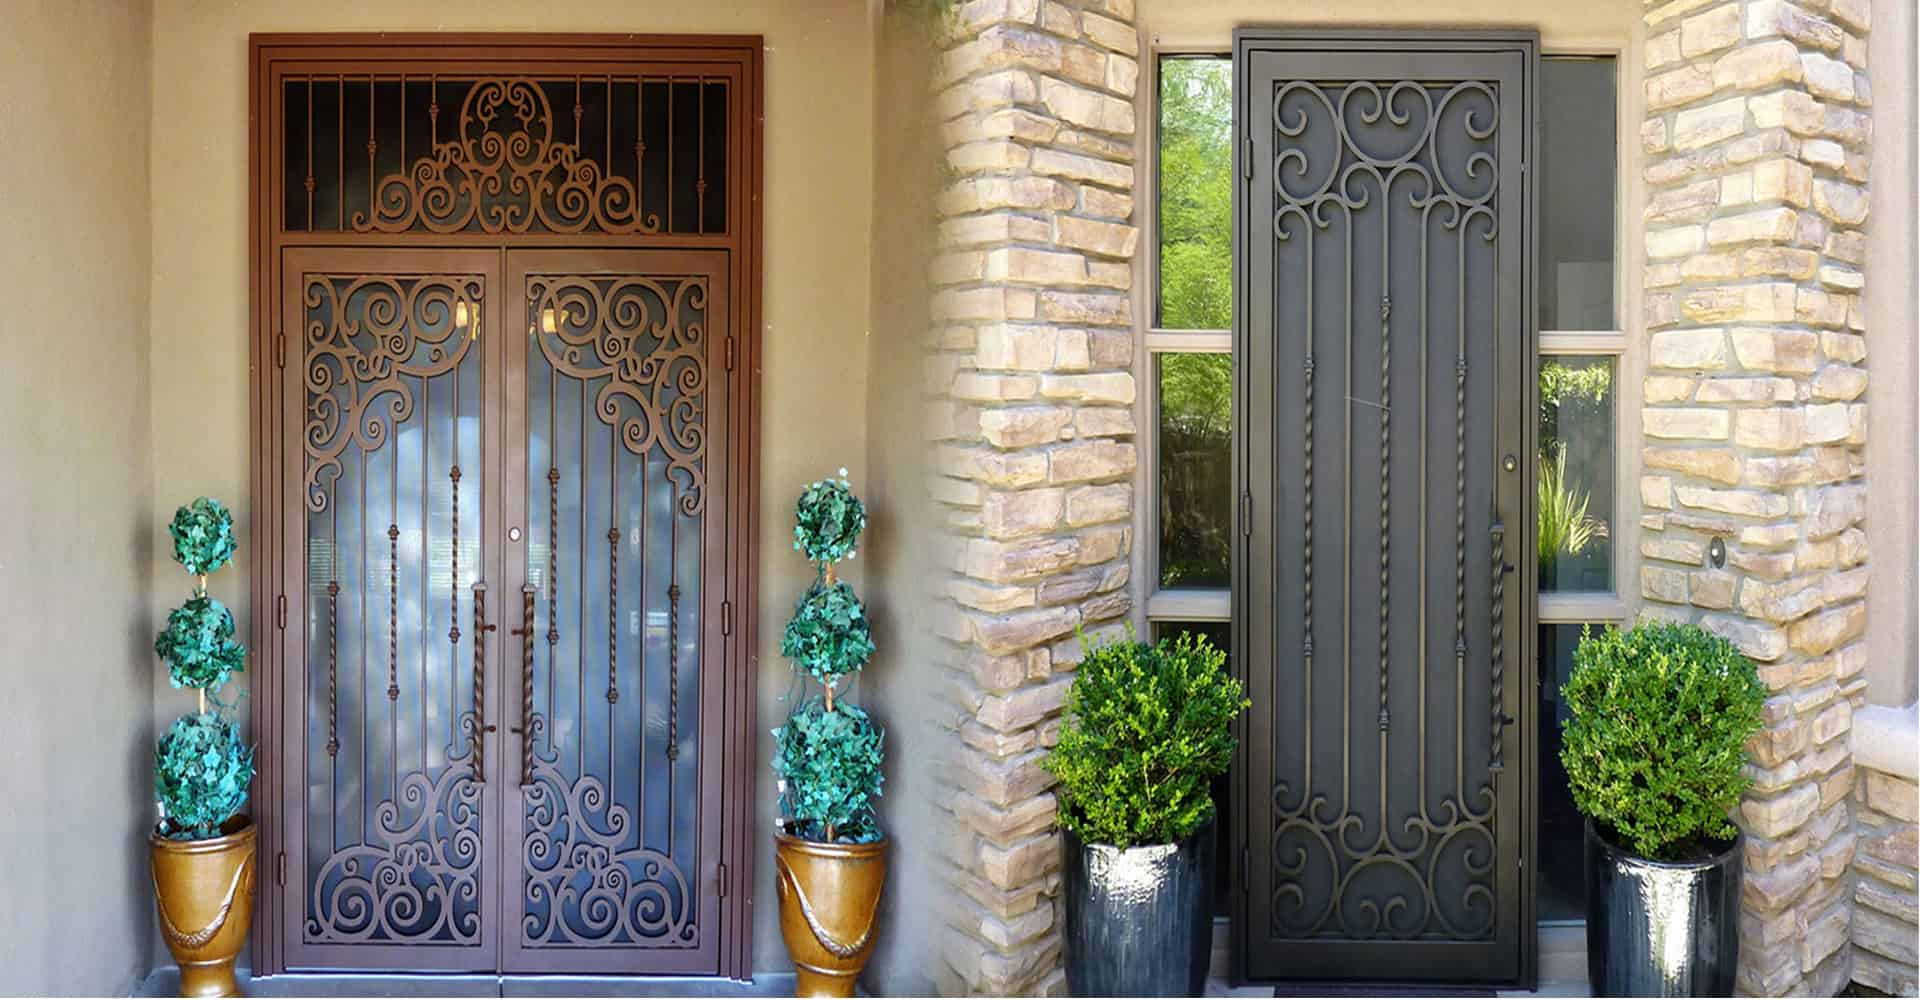 Over 70000 doors gates and screens installed & Screen Doors Tucson | Window Grills Tucson | Southwest Iron Works